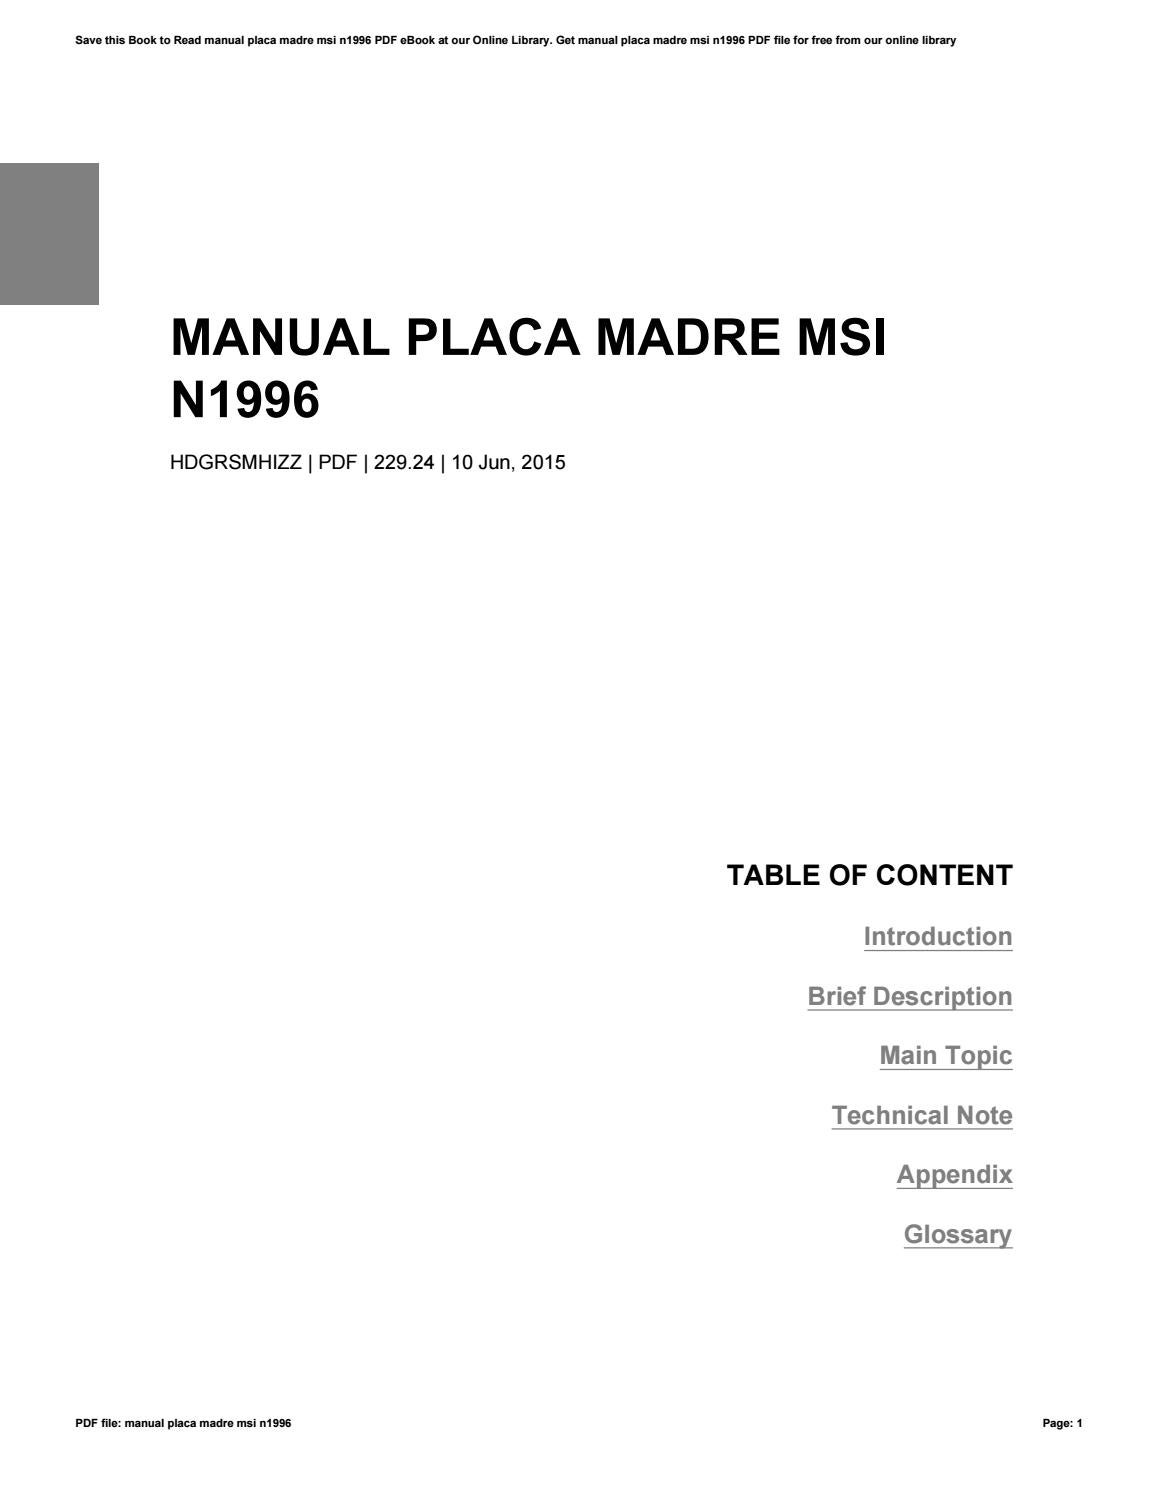 Msi N1996 User Manual Pdf One Word Quickstart Guide Book What Is The Front Panel Diagram For A Ms7326 Solved Fixya Placa Madre By Leolascott2392 Issuu Rh Com